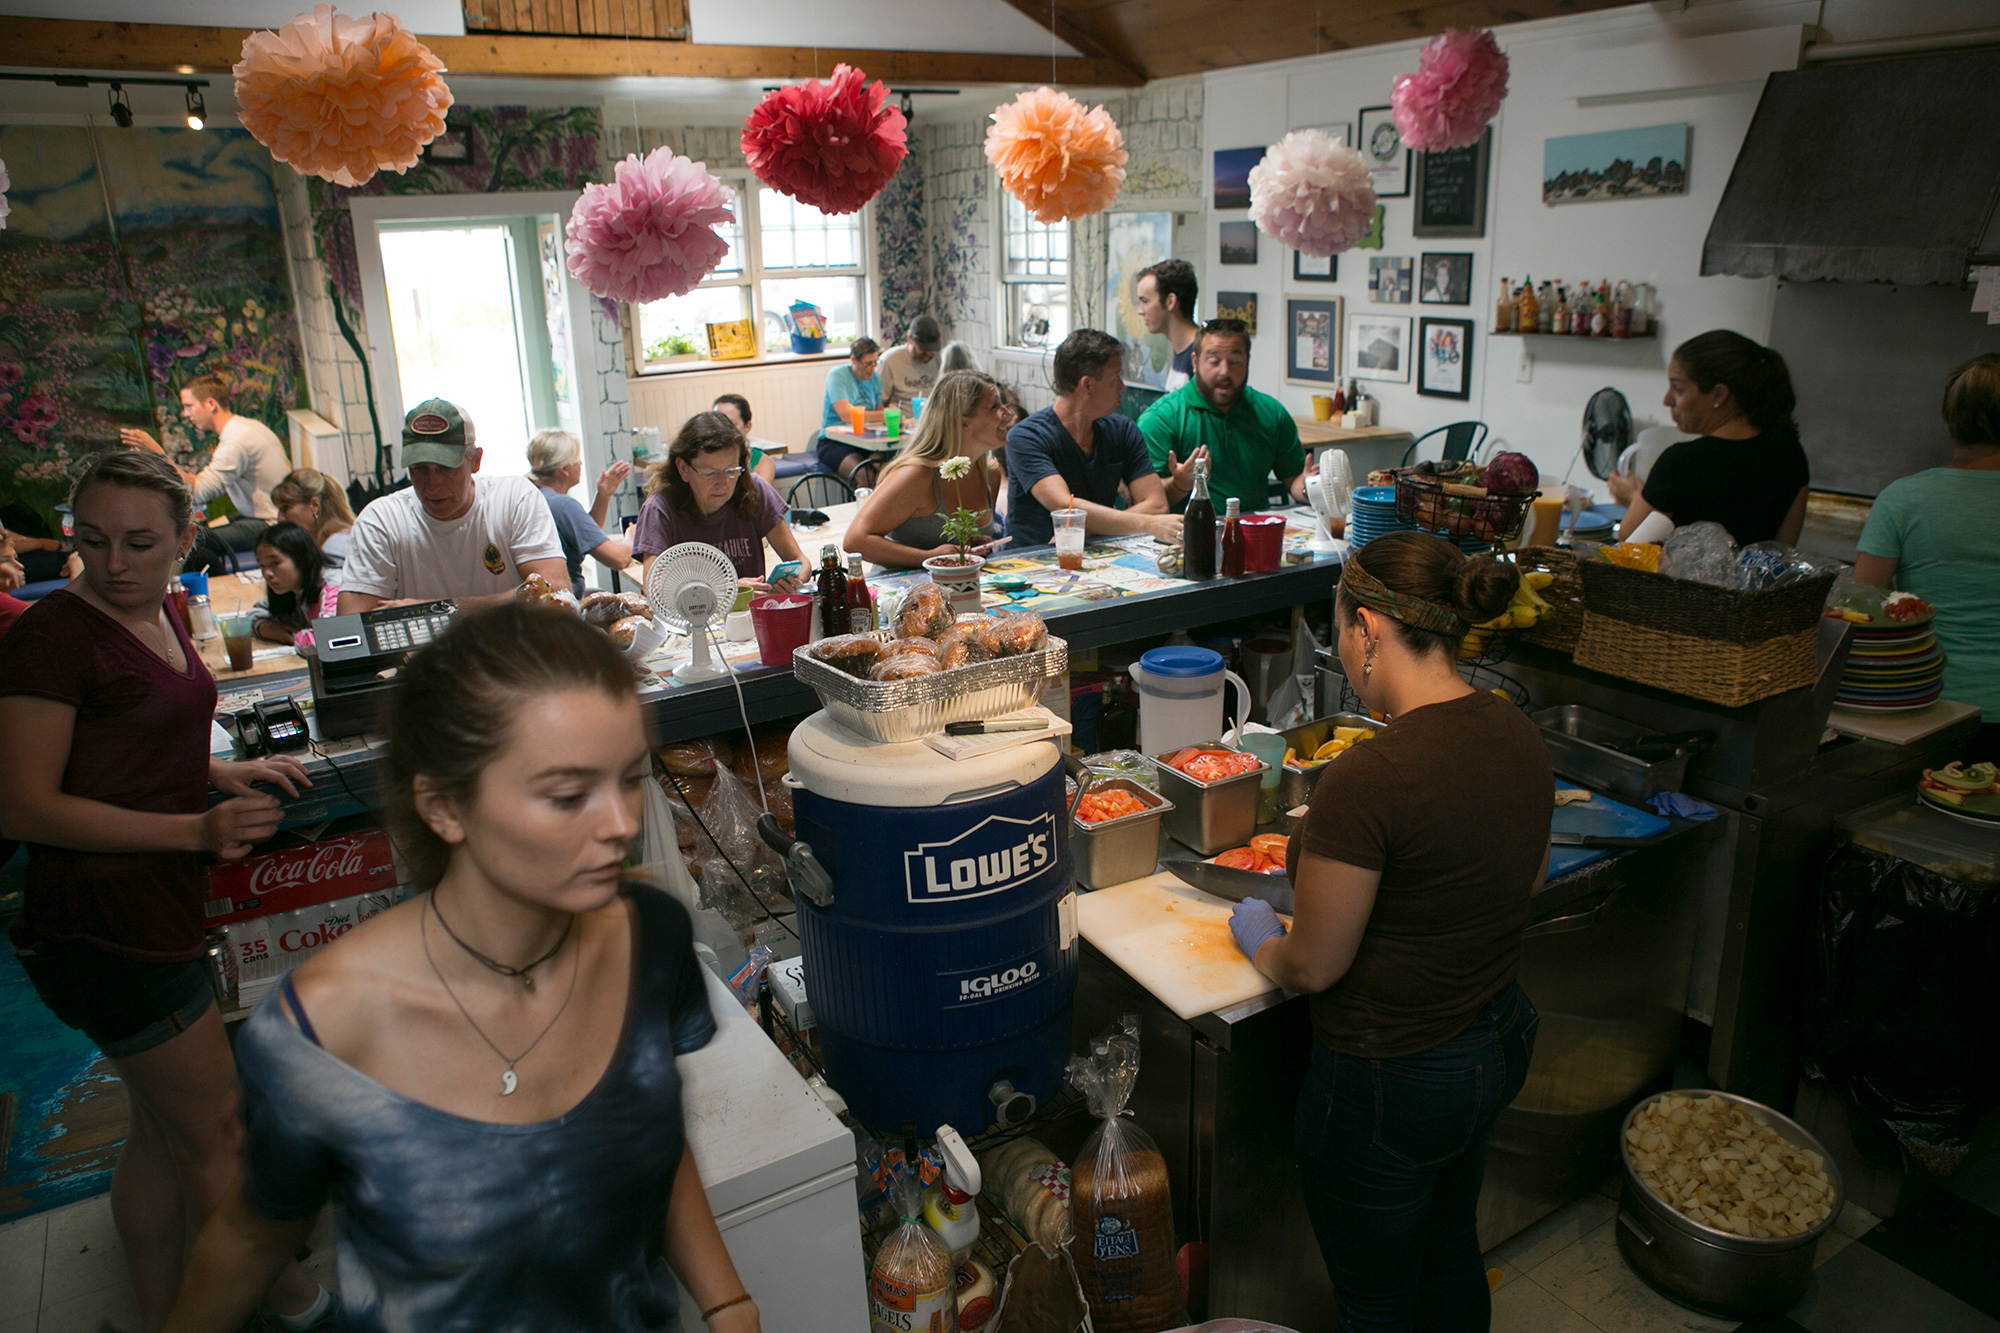 The breakfast rush at Mad Martha's Cafe on Plum Island. The restaurant is one of several local businesses built on a fragile ecosystem of sands that are constantly shifting. It is at risk of flooding and damage from rising sea levels and intensifying storm surges. (Photo by Lauren Owens Lambert/GroundTruth)